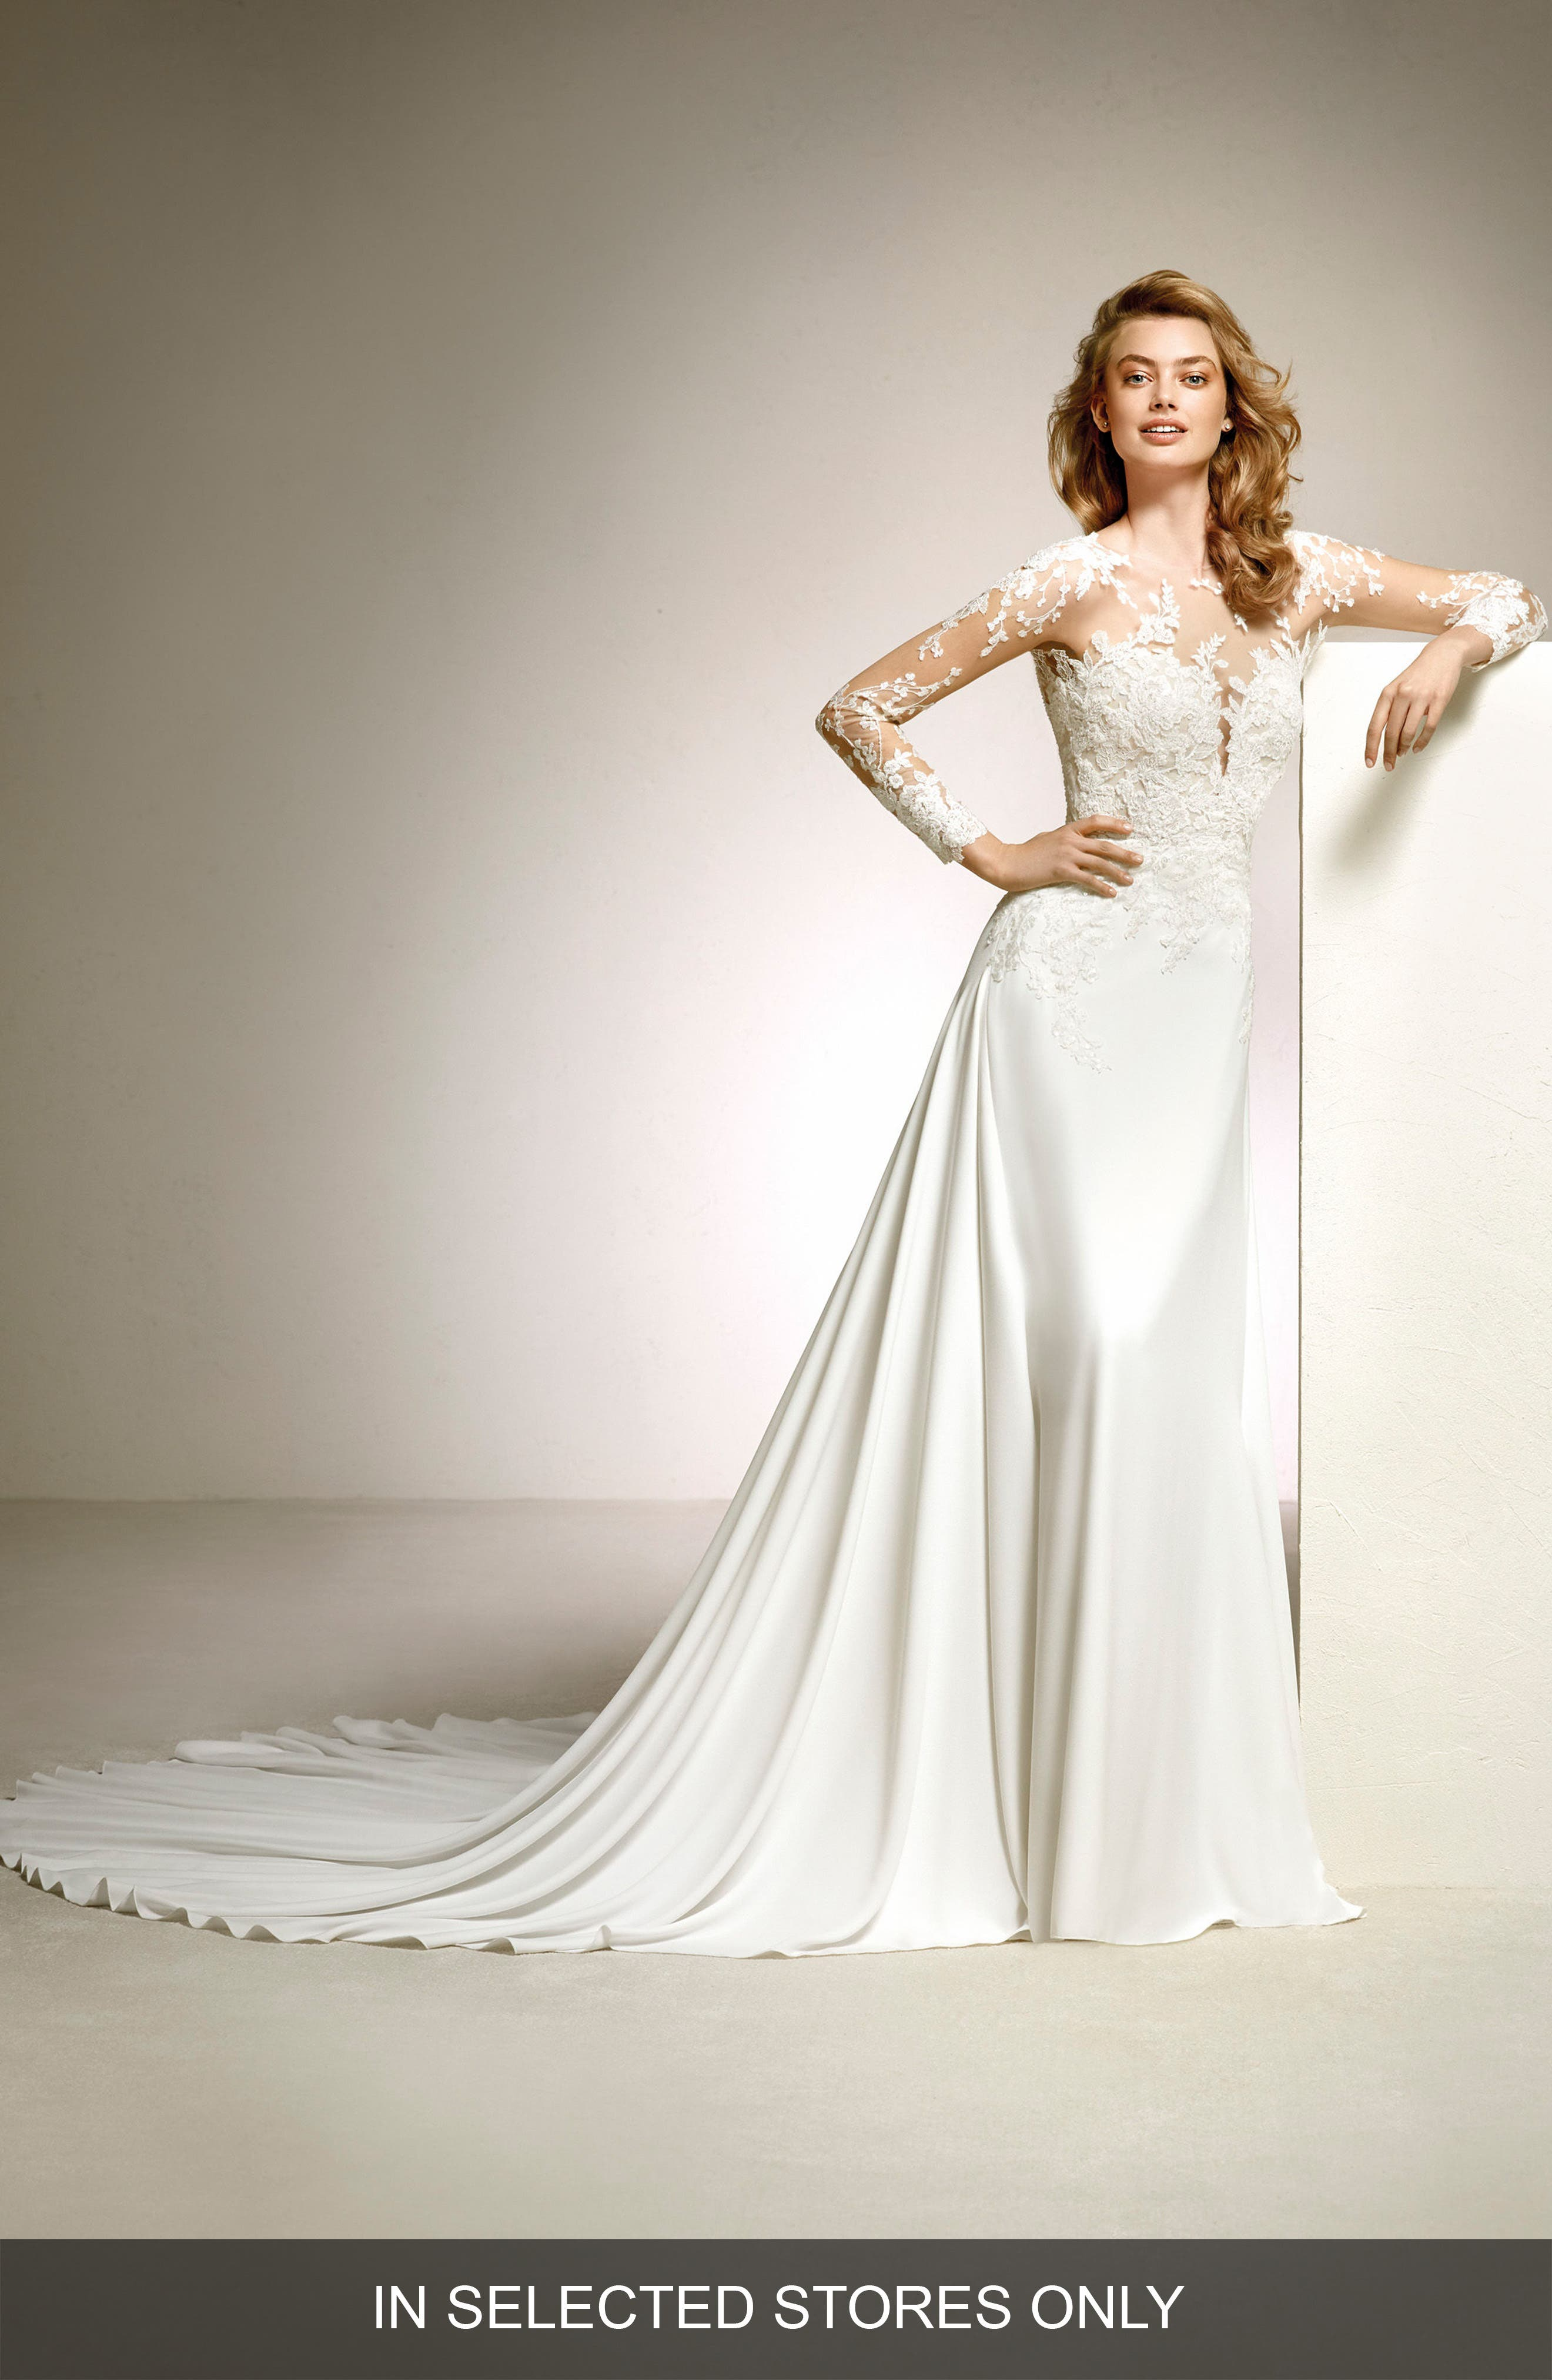 Dacil Lace Illusion Yoke & Sleeve A-Line Gown,                         Main,                         color, Off White/Crst/Nd